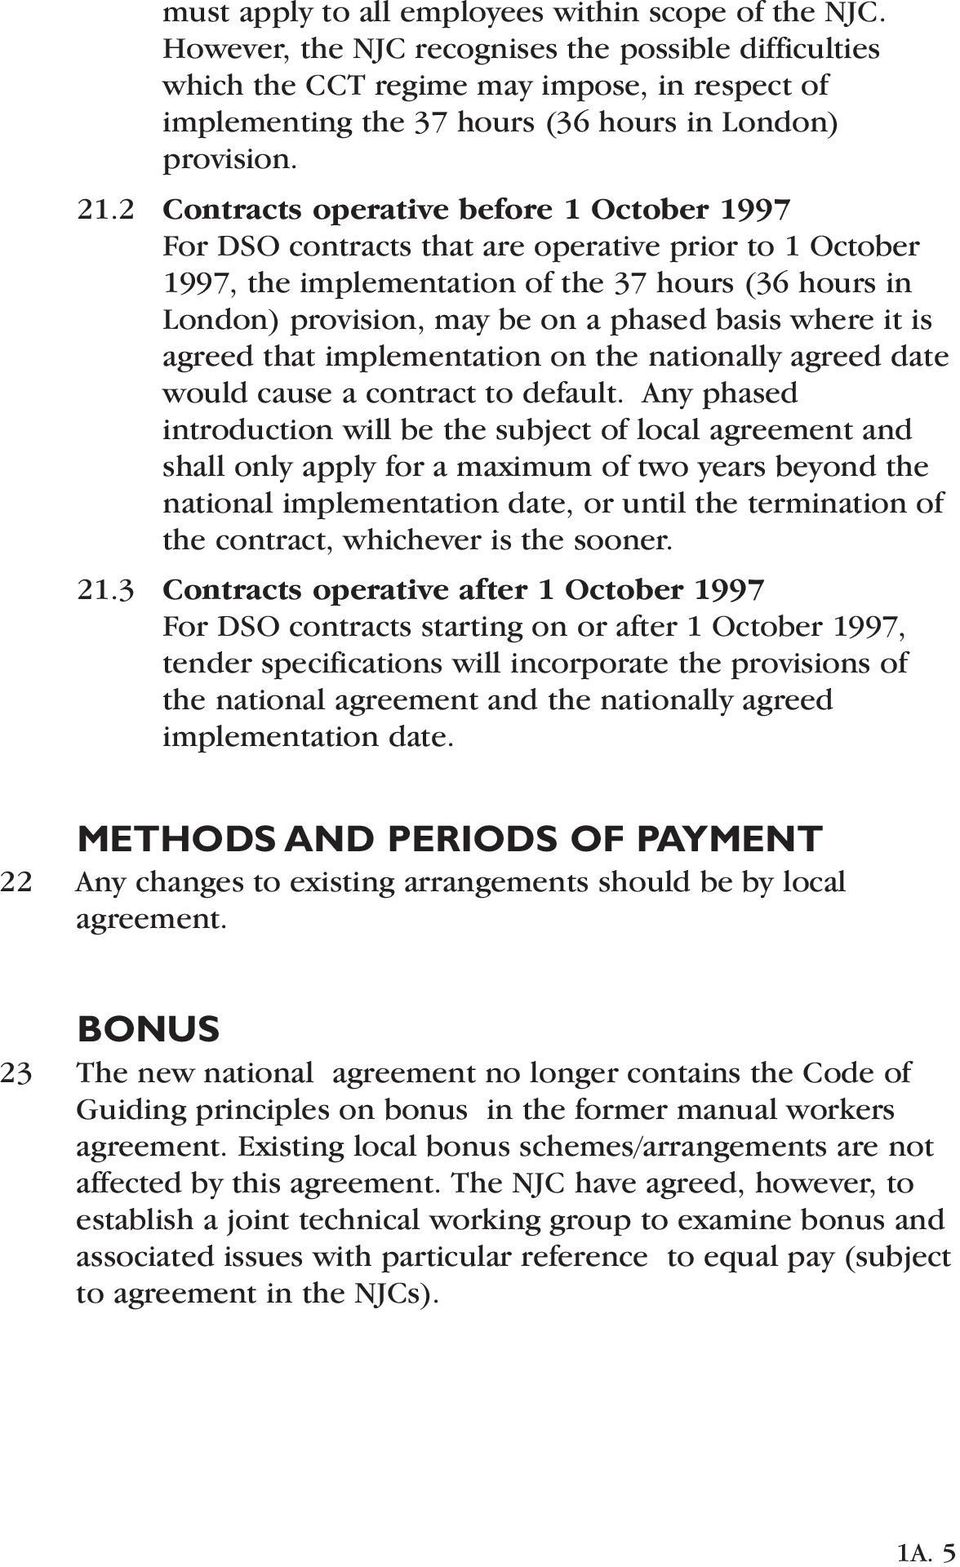 2 Contracts operative before 1 October 1997 For DSO contracts that are operative prior to 1 October 1997, the implementation of the 37 hours (36 hours in London) provision, may be on a phased basis